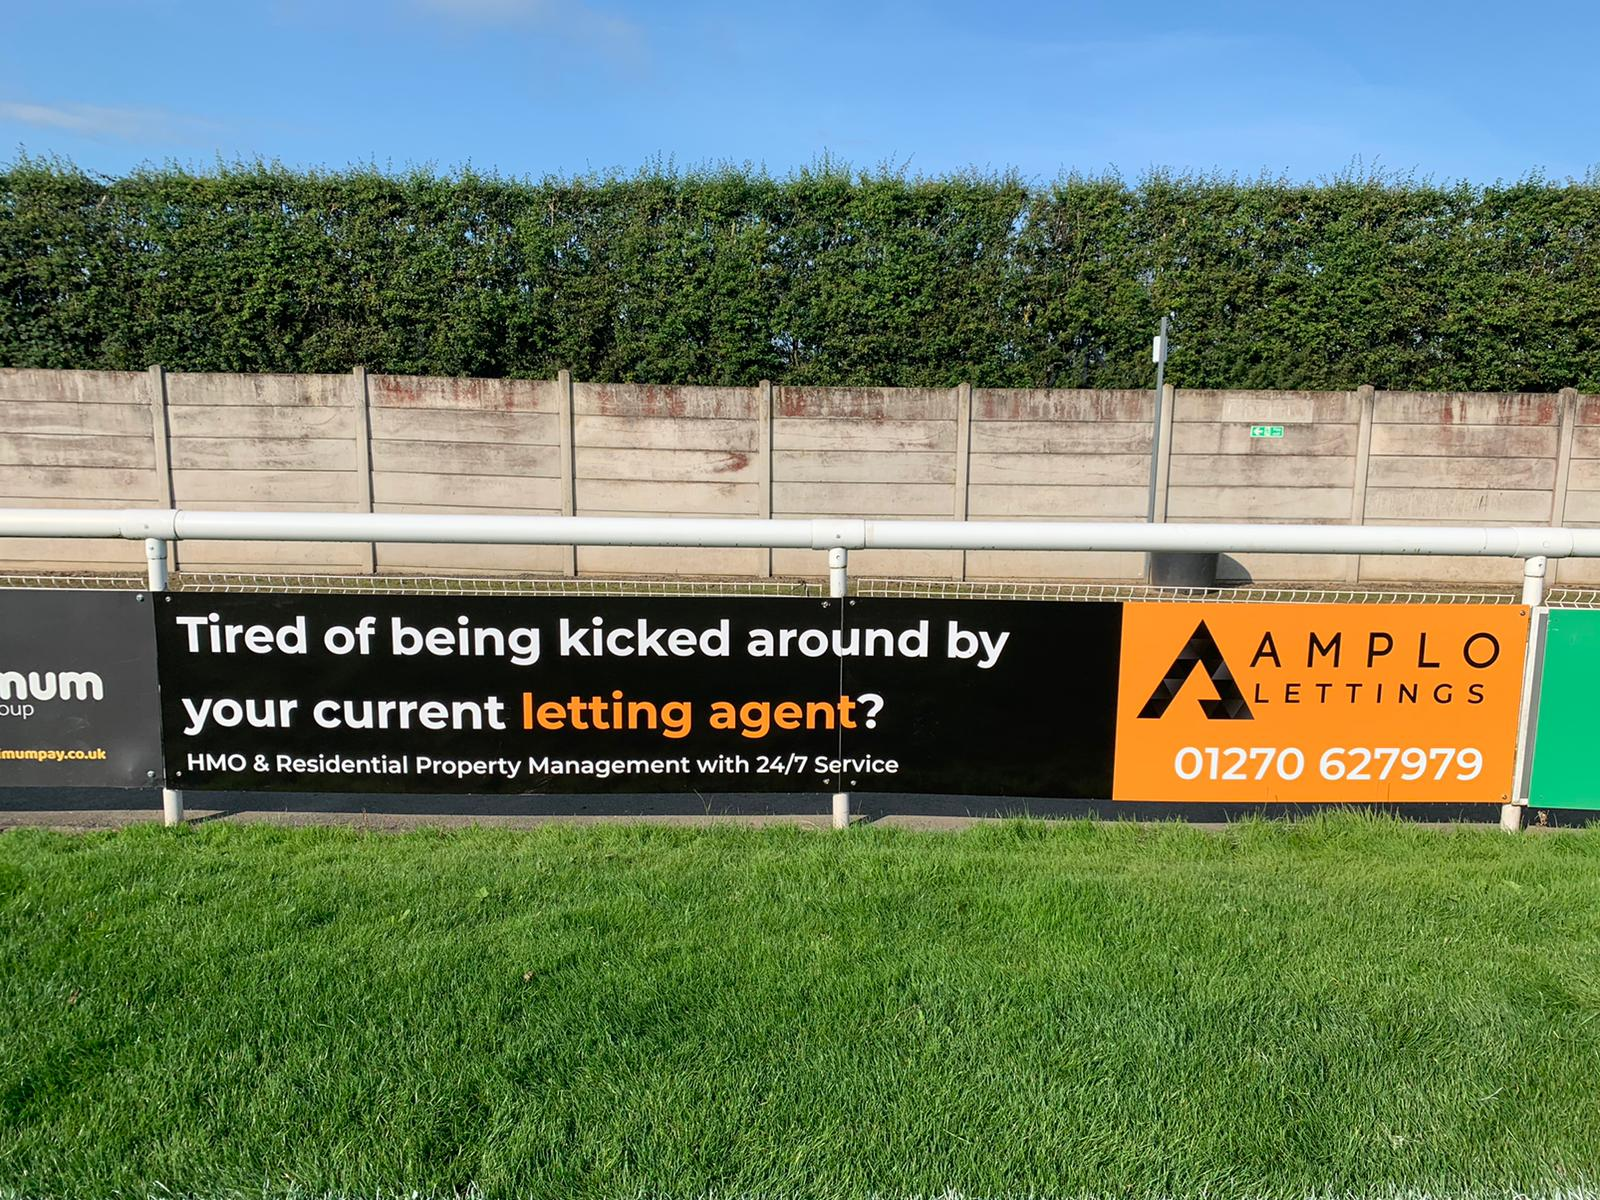 Amplo Lettings | Property Management Crewe | Letting Agents Crewe | HMO Management Crewe | House to Rent Crewe